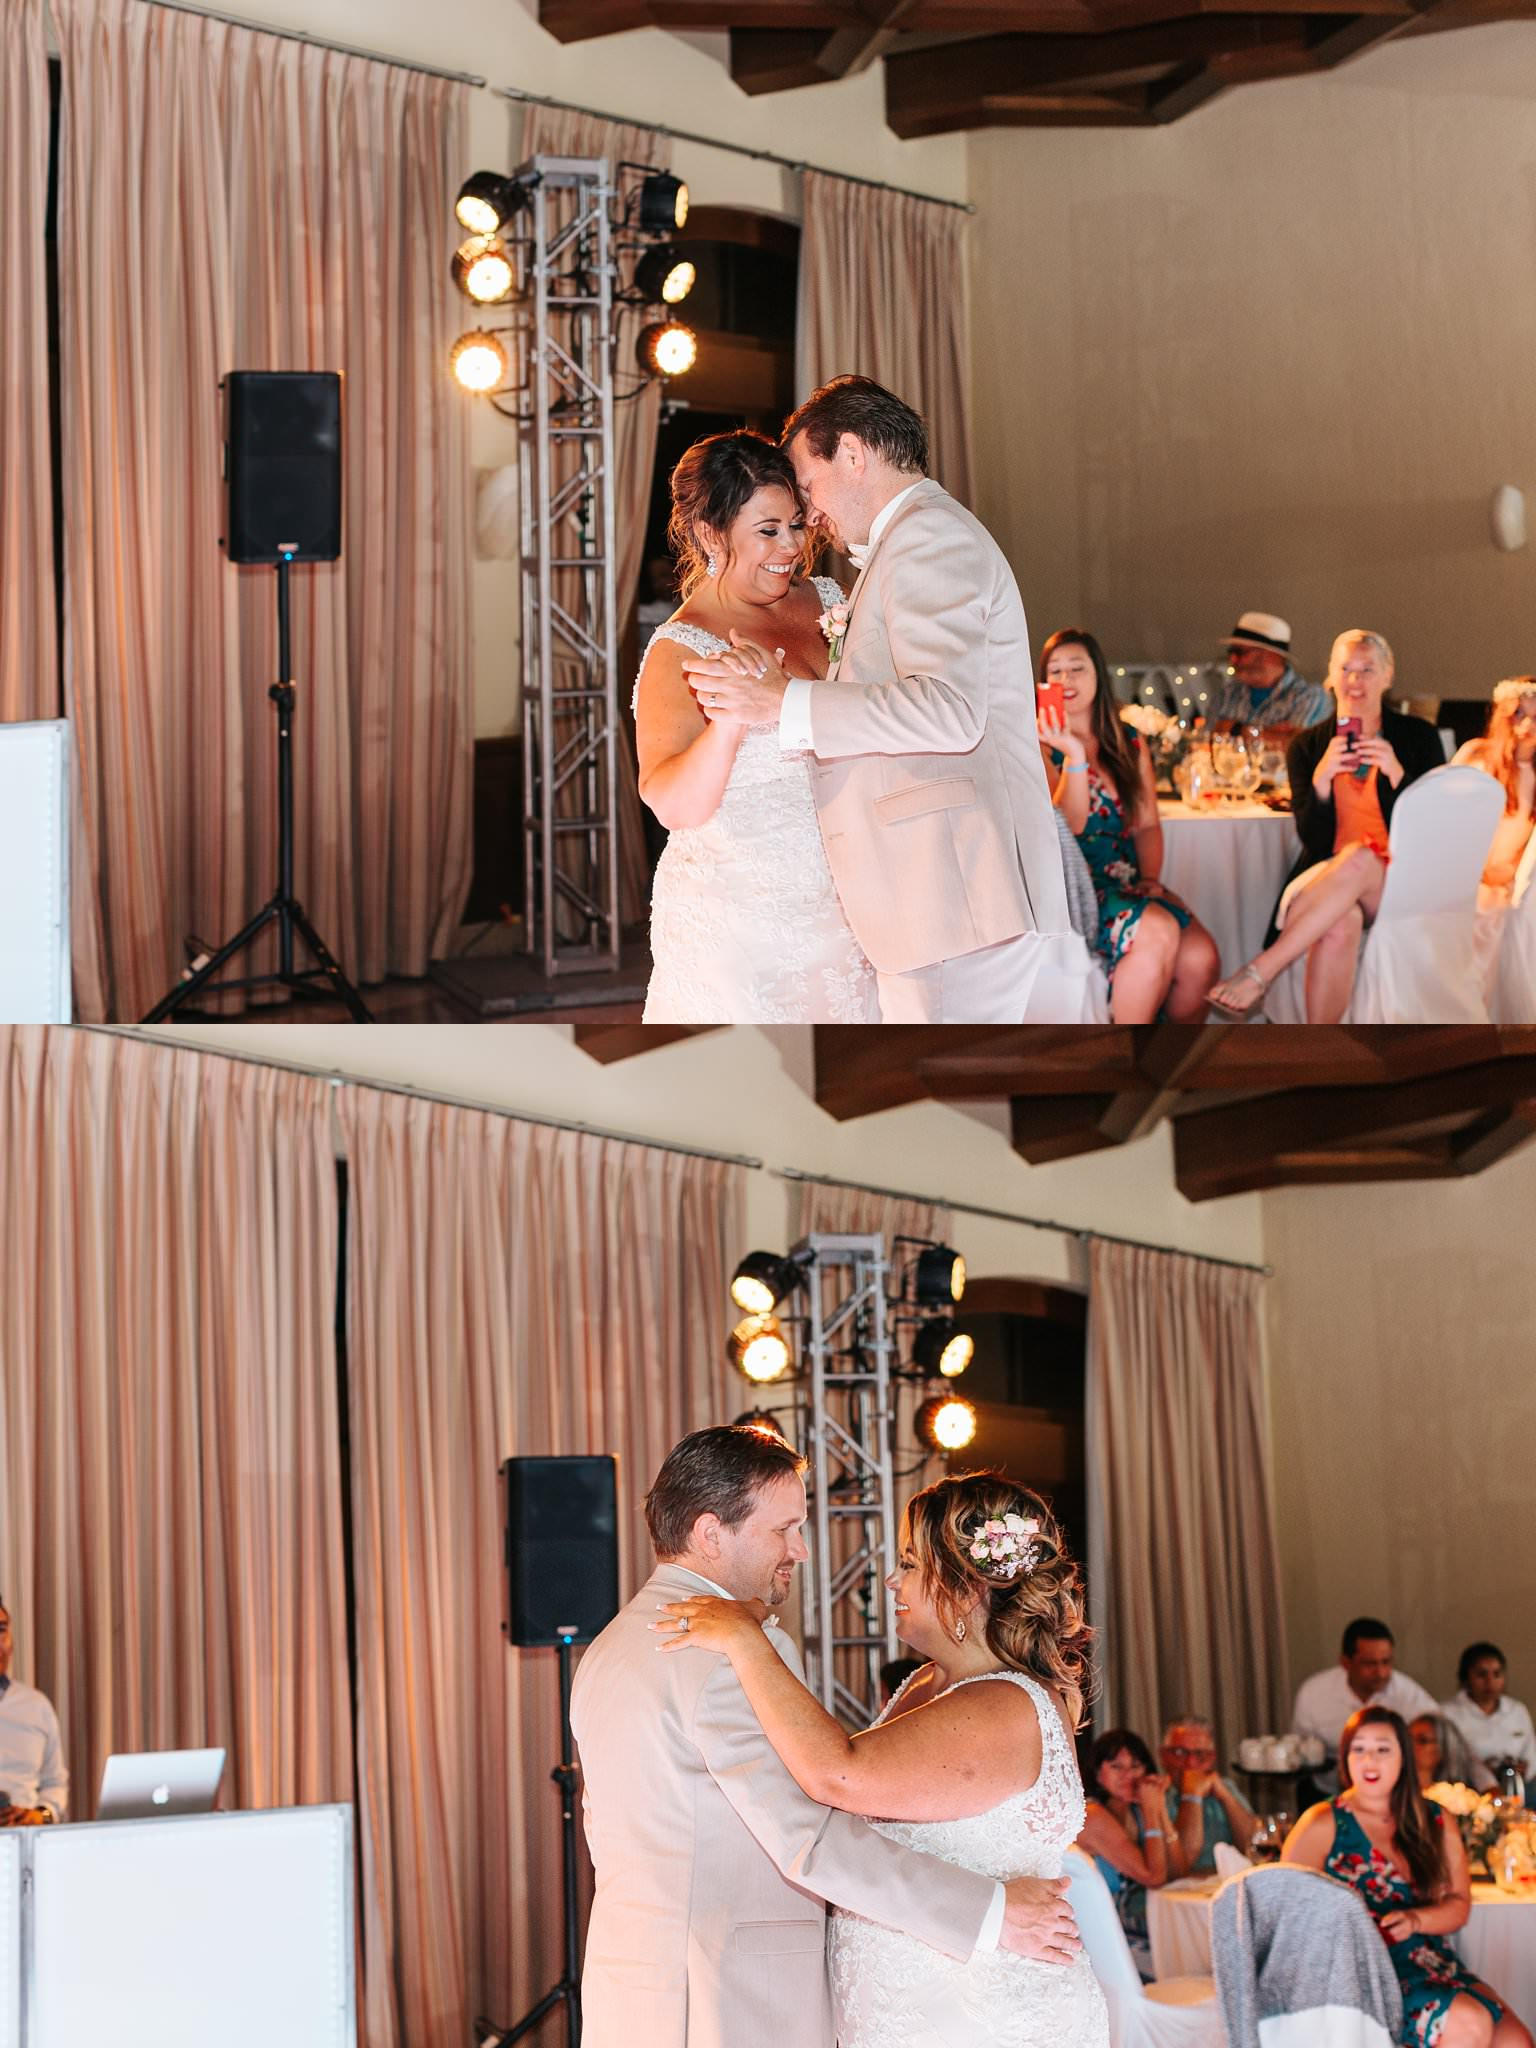 romantic first dance during destination wedding in cabo san lucas, mexico - httos://brittneyhannonphotography.com